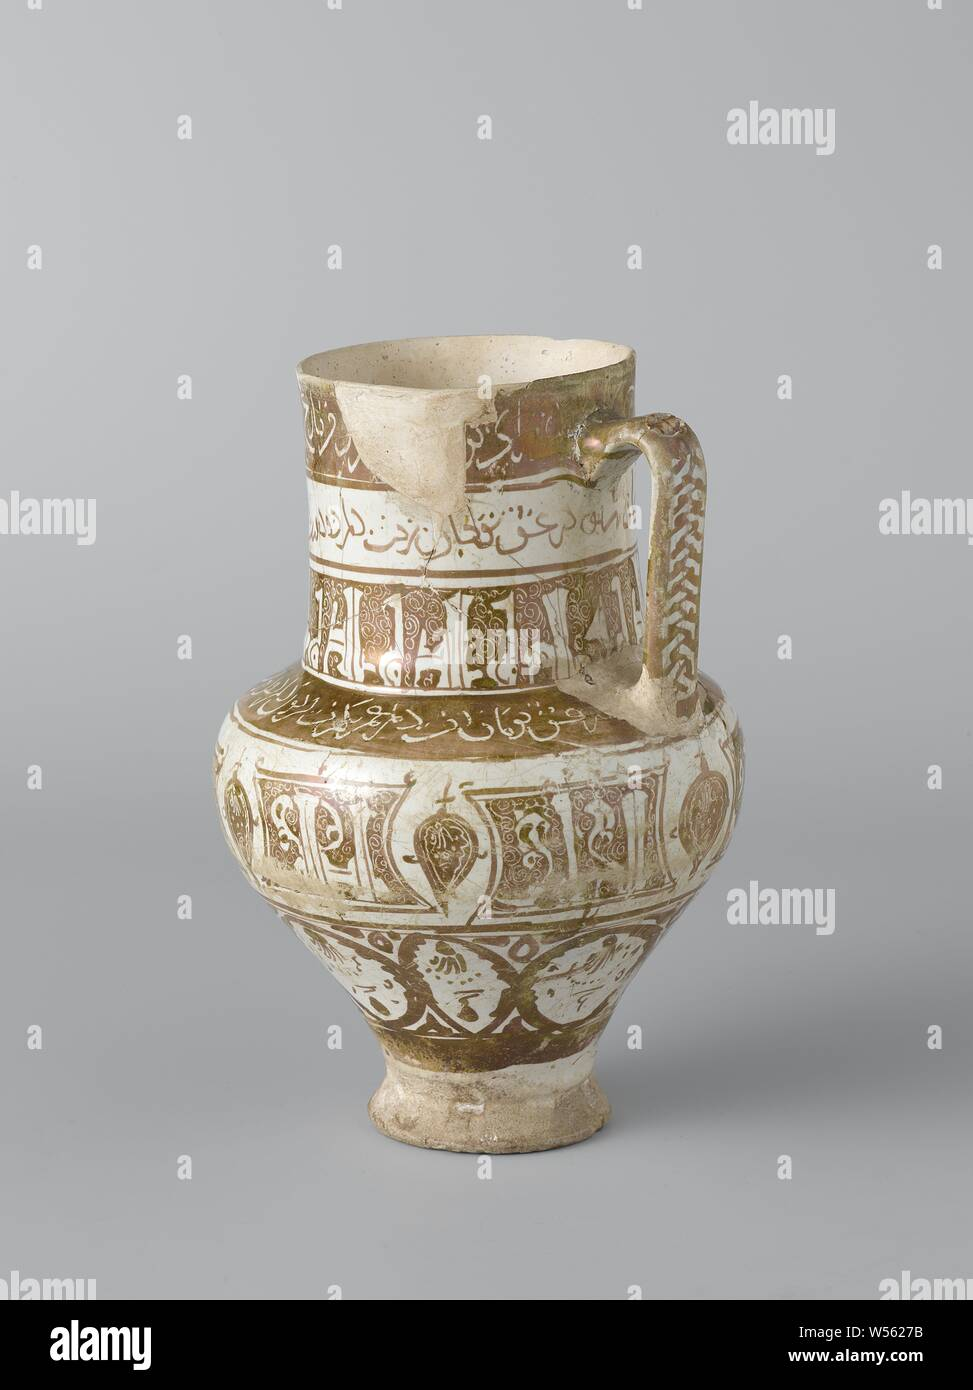 Ewer with borders with an inscription, Can of quartz fryer decorated with bands with inscription in luster and engraved in luster on a surface of opaque white tin-lead-alkaline glaze., anonymous, Kashan, c. 1200 - c. 1220, earthenware, glaze, luster (textile), vitrification, h 22.5 cm d 16 cm Stock Photo